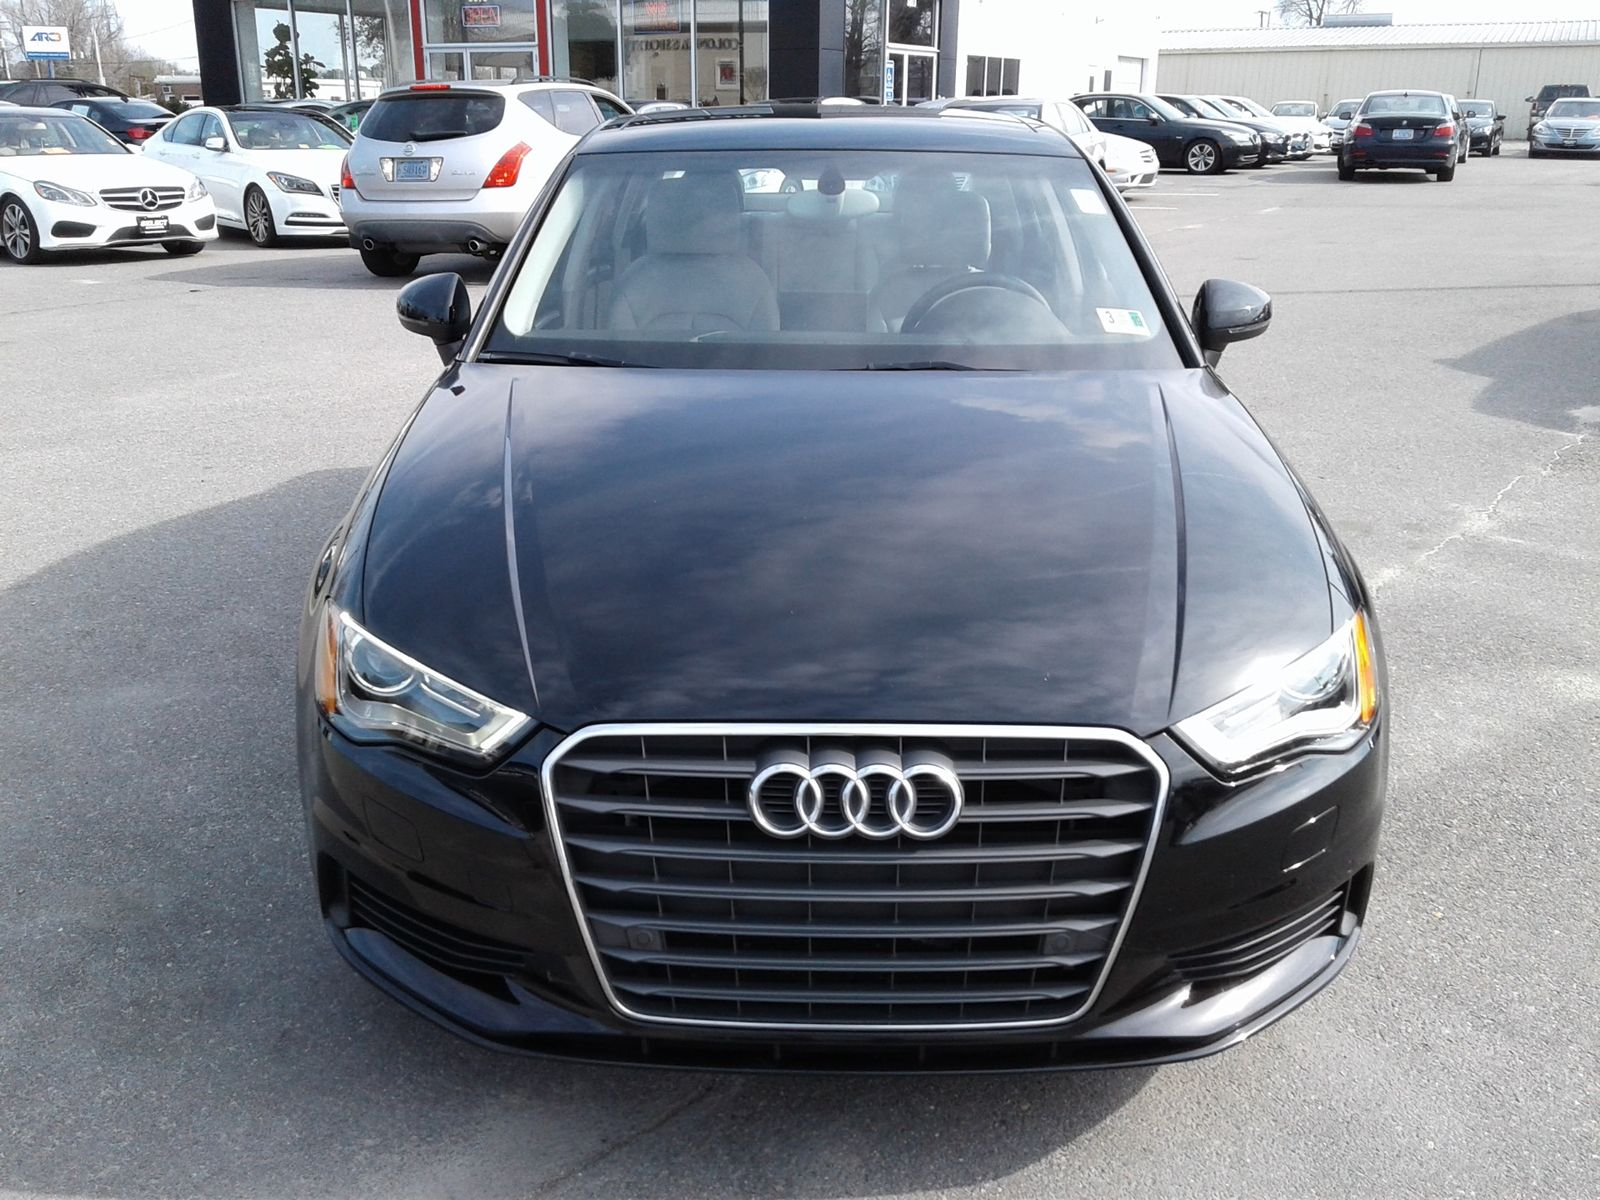 va arlington dealers cars auto com at img audi sale in used for